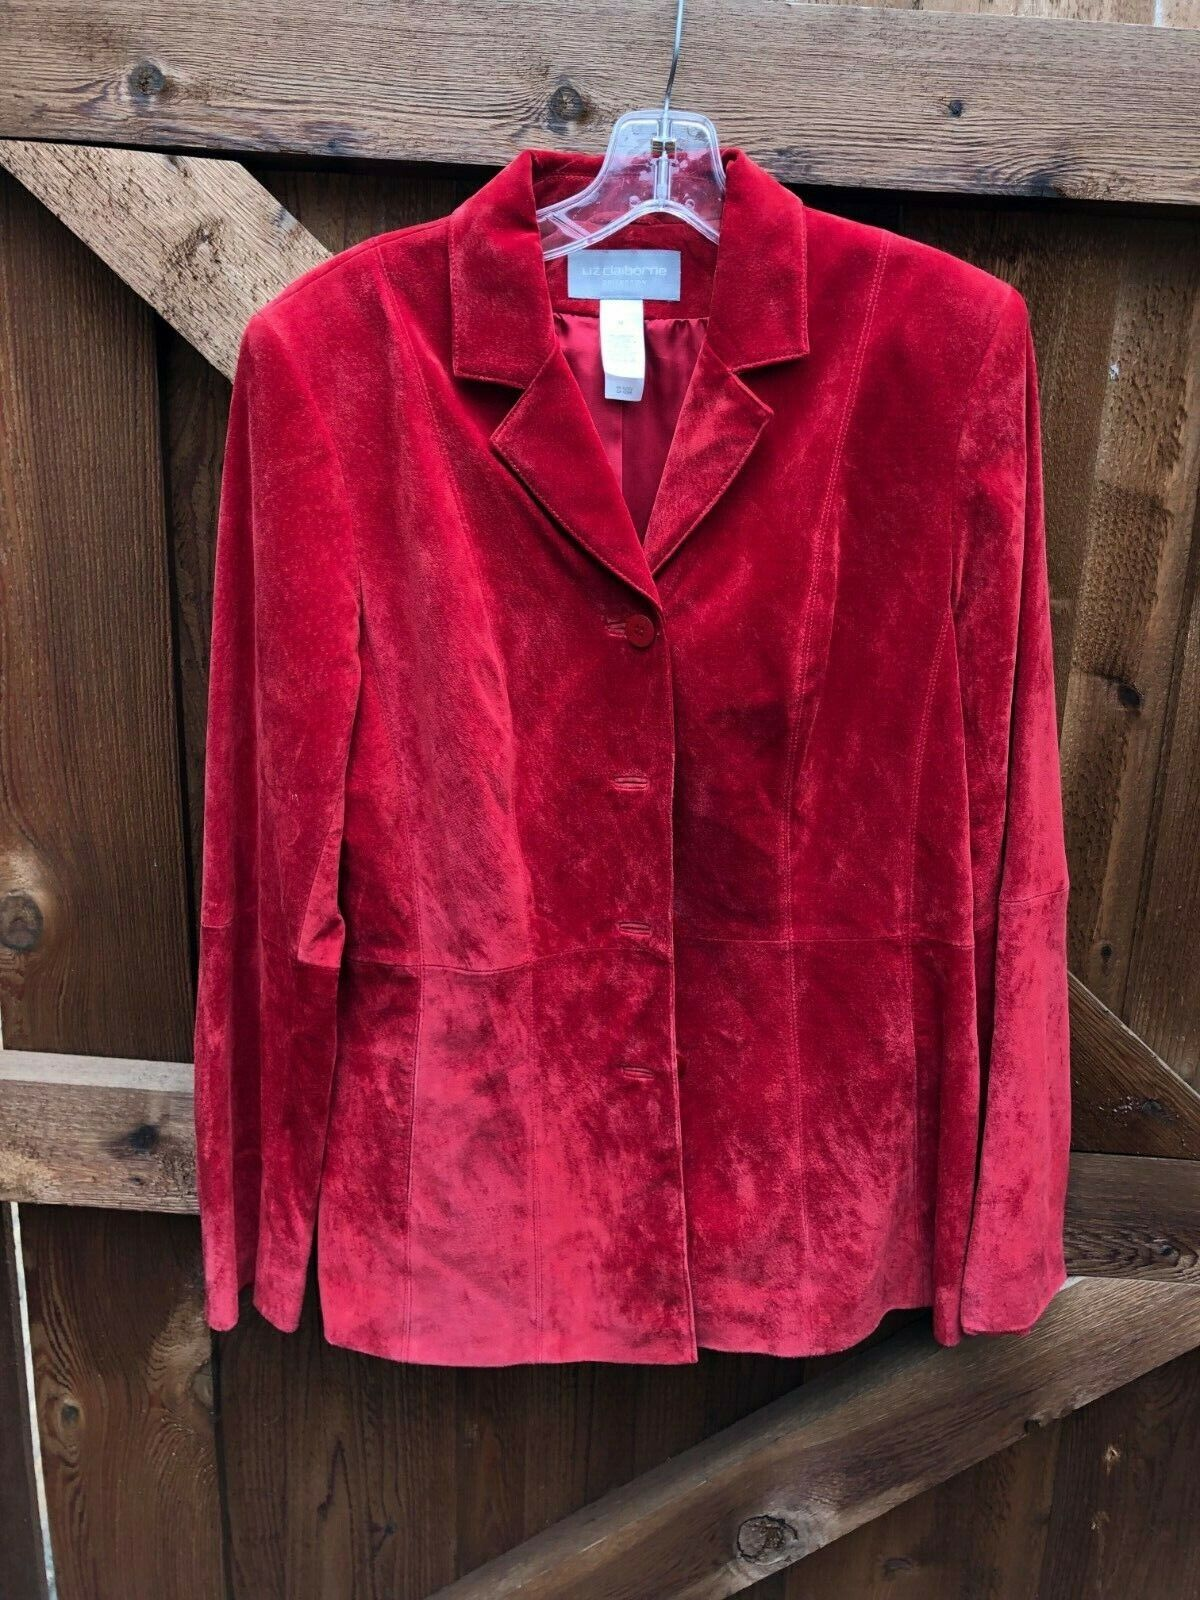 new suede leather jacket bright red size